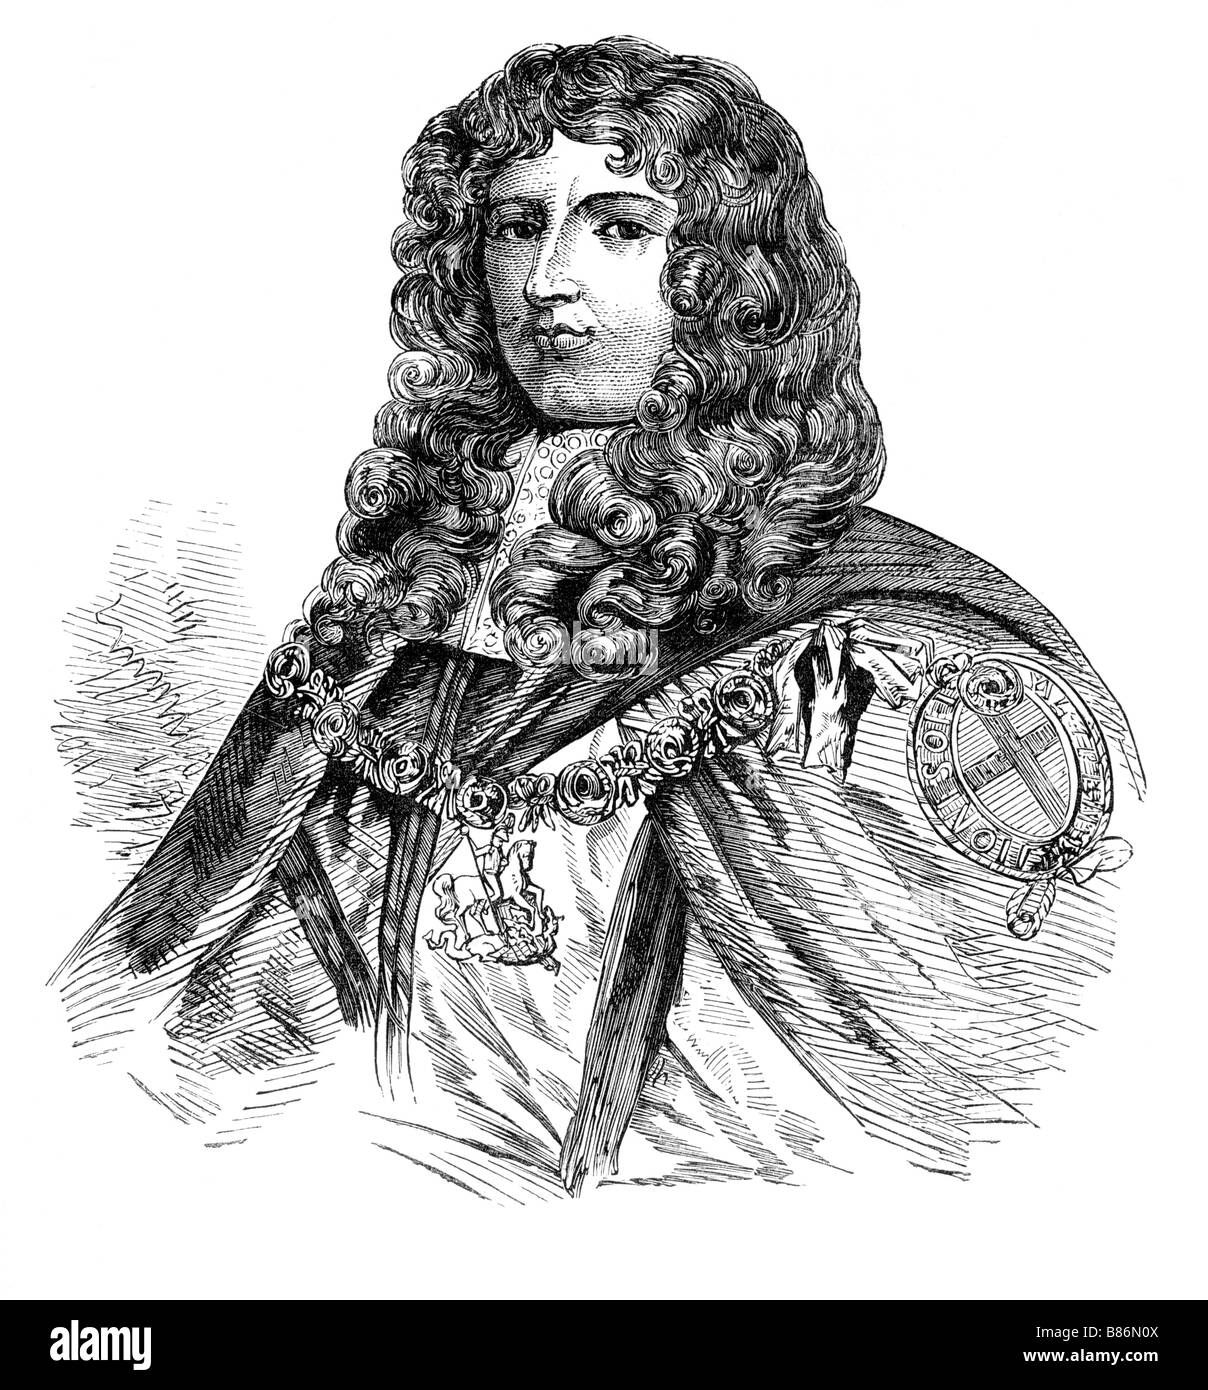 James Butler 1st Duke of Ormonde Marquis of Ormond a Major Royalist Figure at the time of the English Civil War - Stock Image